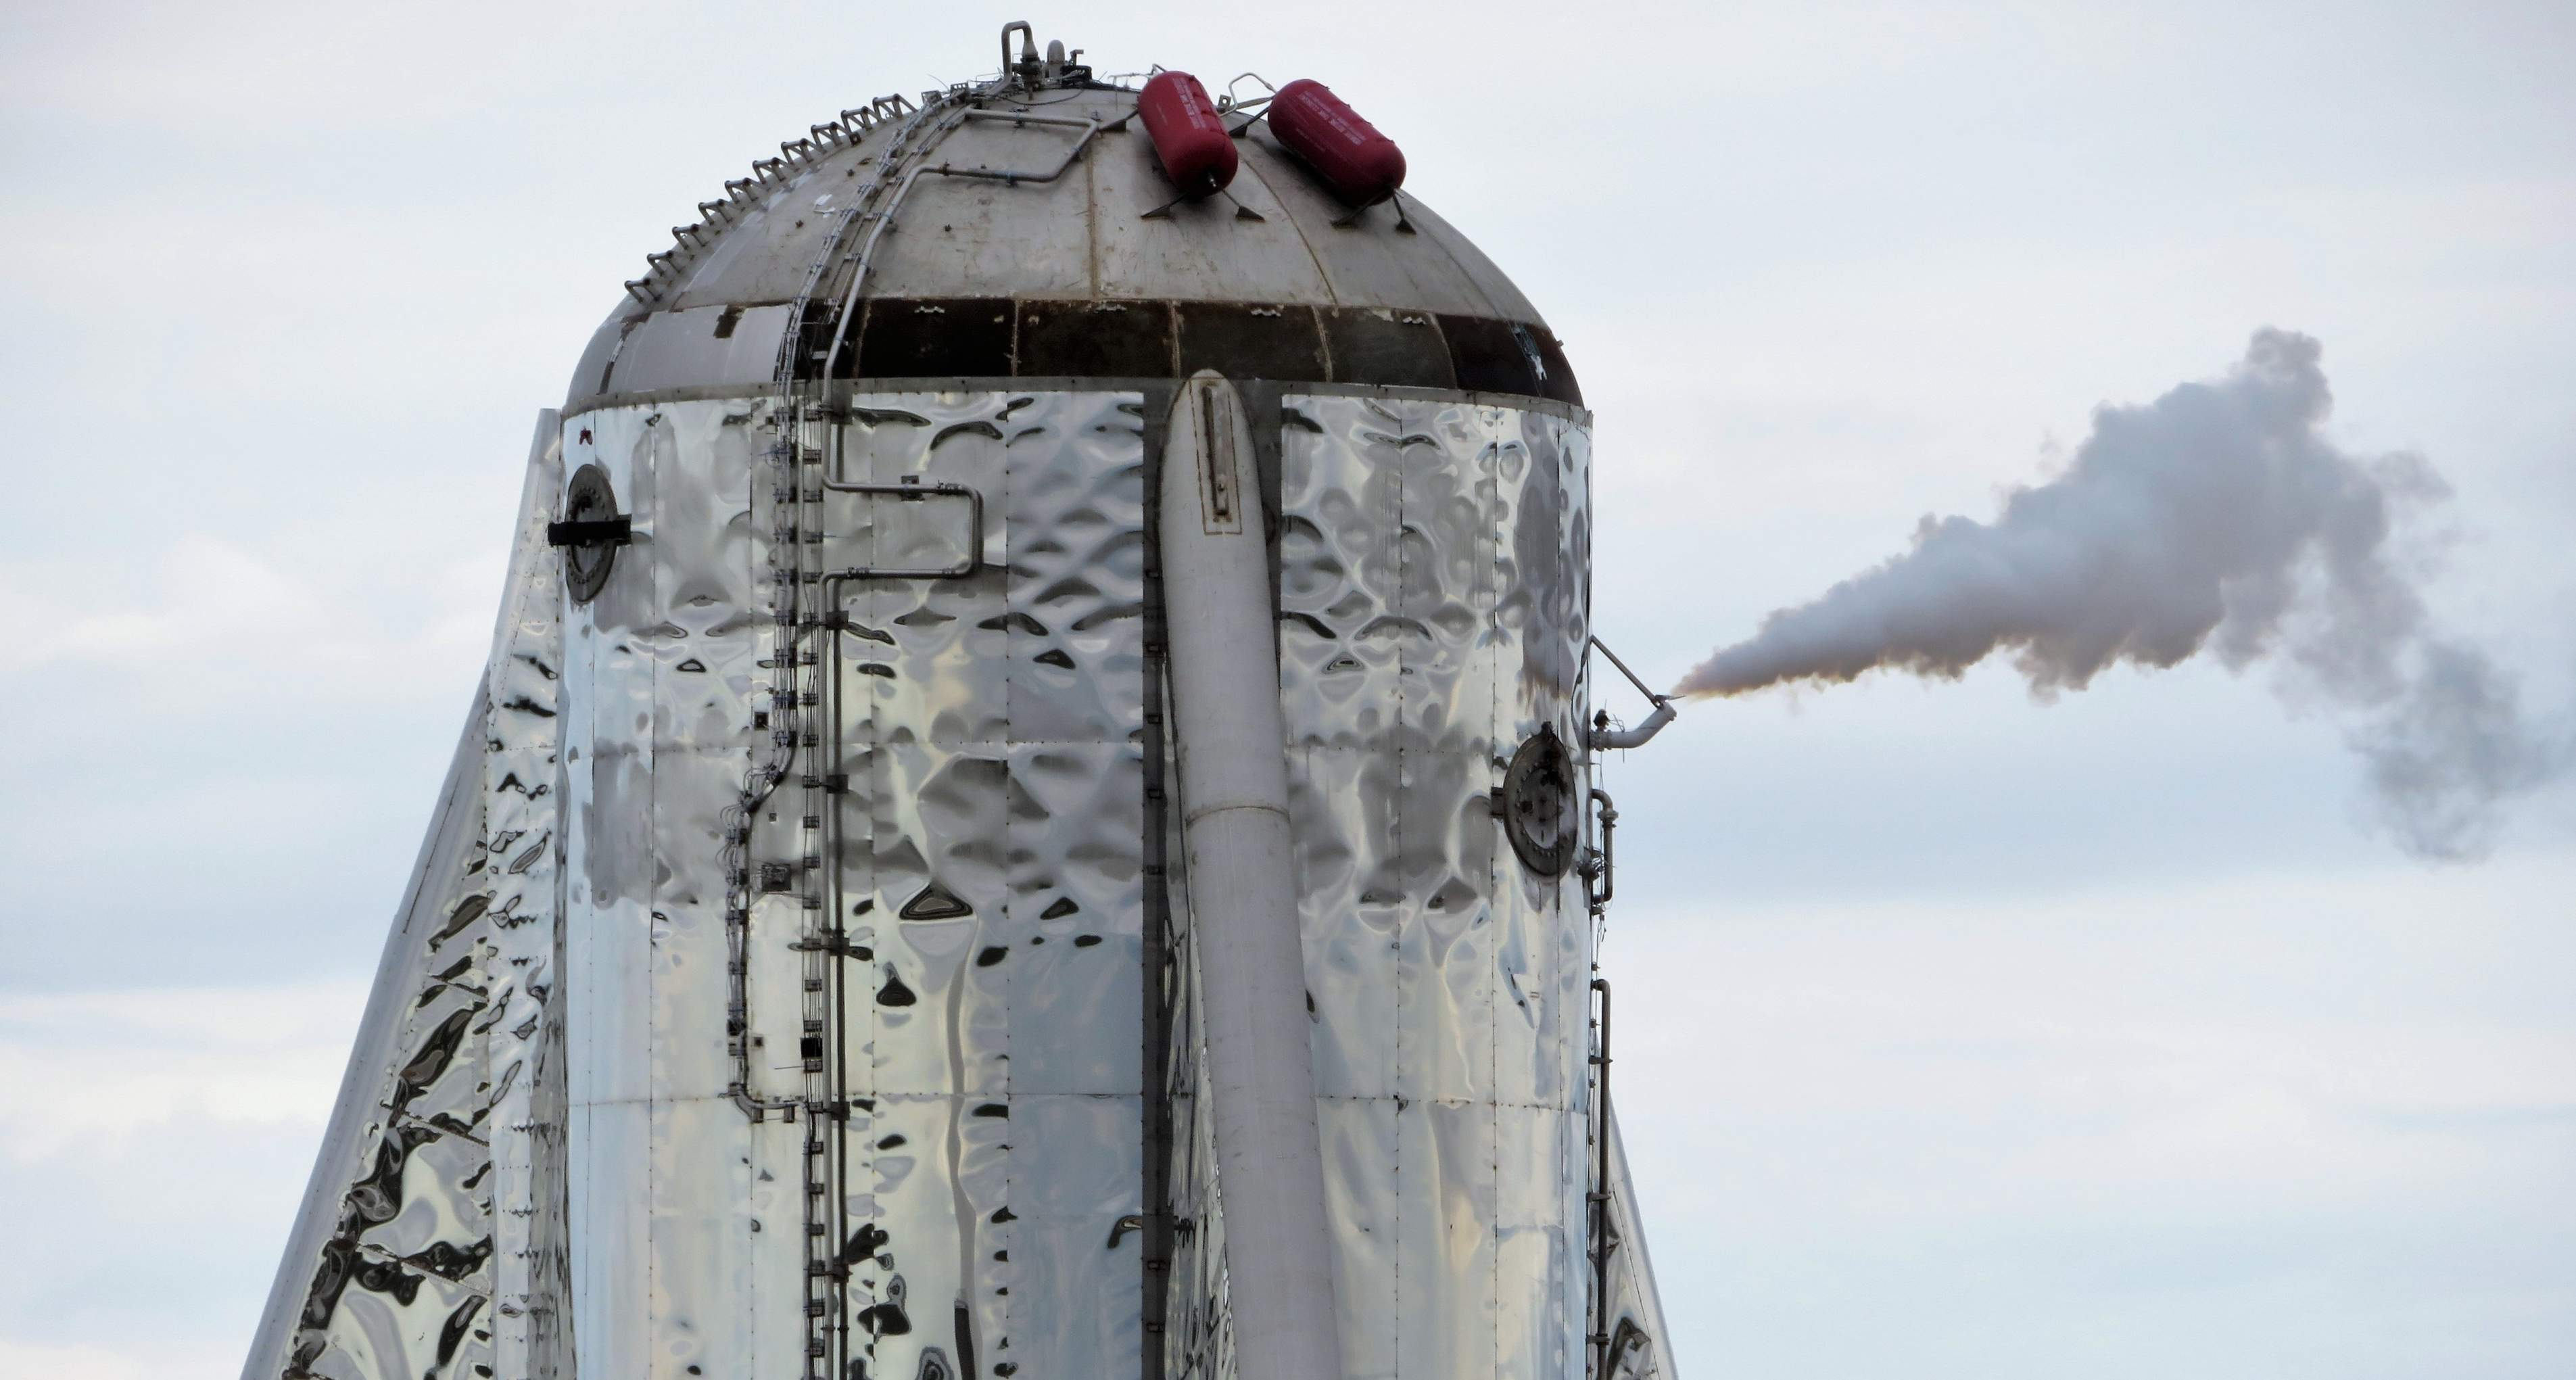 SpaceX shows off successful heatshield test for Starship